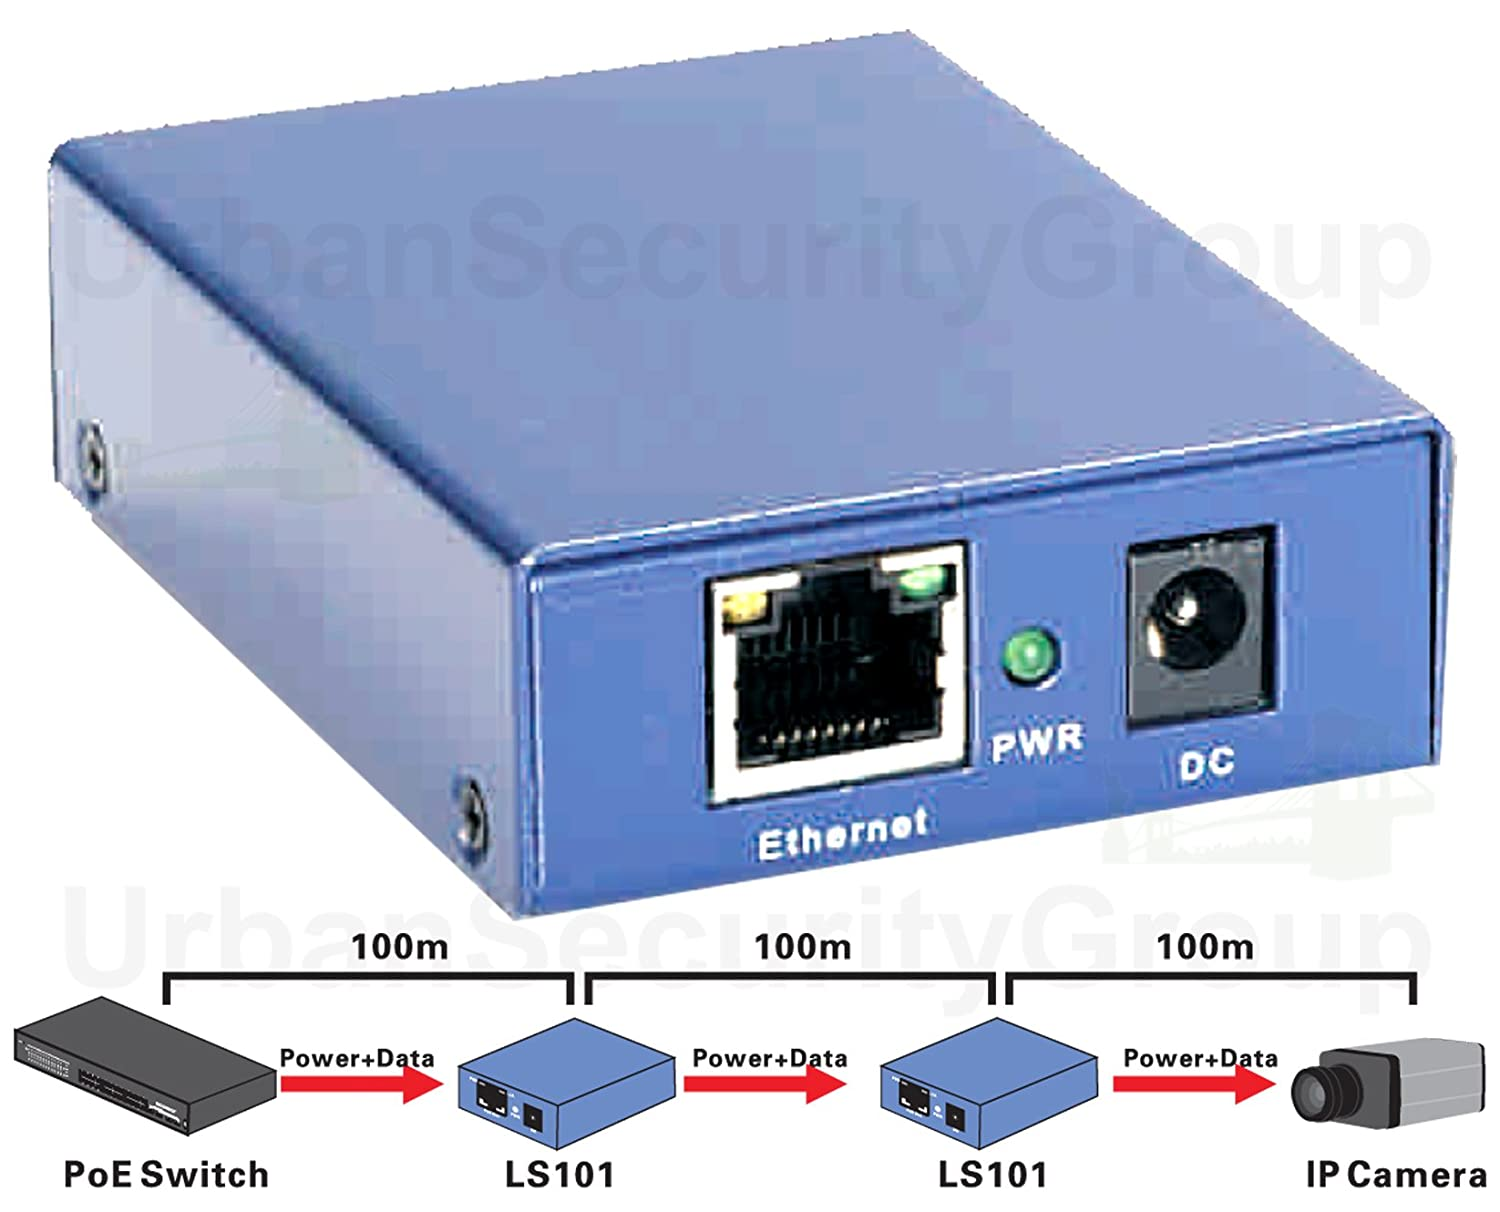 Usg Power Over Ethernet Extender Repeater Signal Dc And Digital Data Connection Circuit Schematic Booster Extend Poe 330 Feet Ieee 8023af At True Plug Play Auto Detects Devices